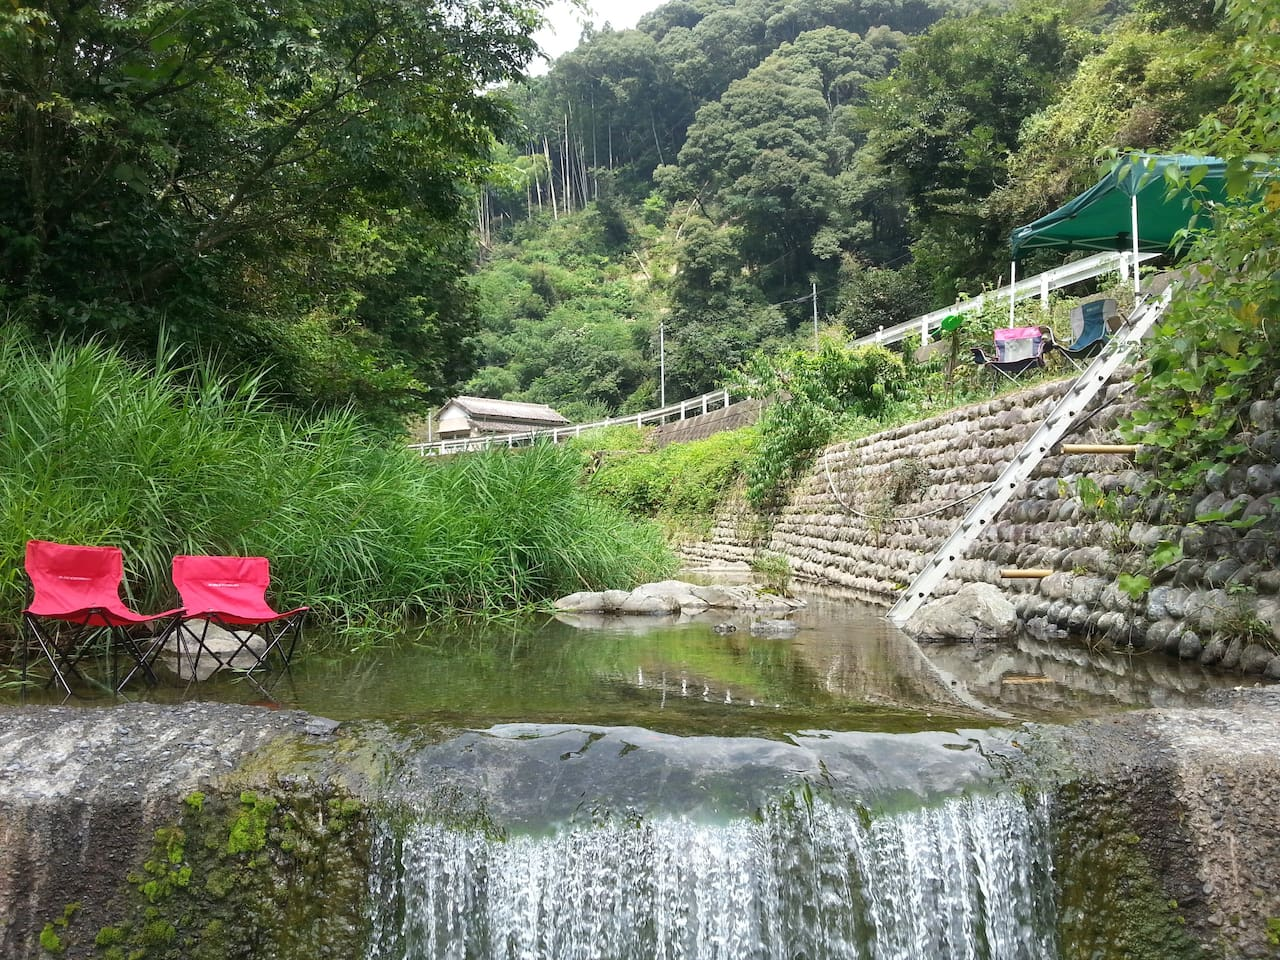 The house River - cold, clean, fresh water. our own privet space, just under the house. deep Enough for sitting and soaking your body. sitting place, shade, small waterfall massage.